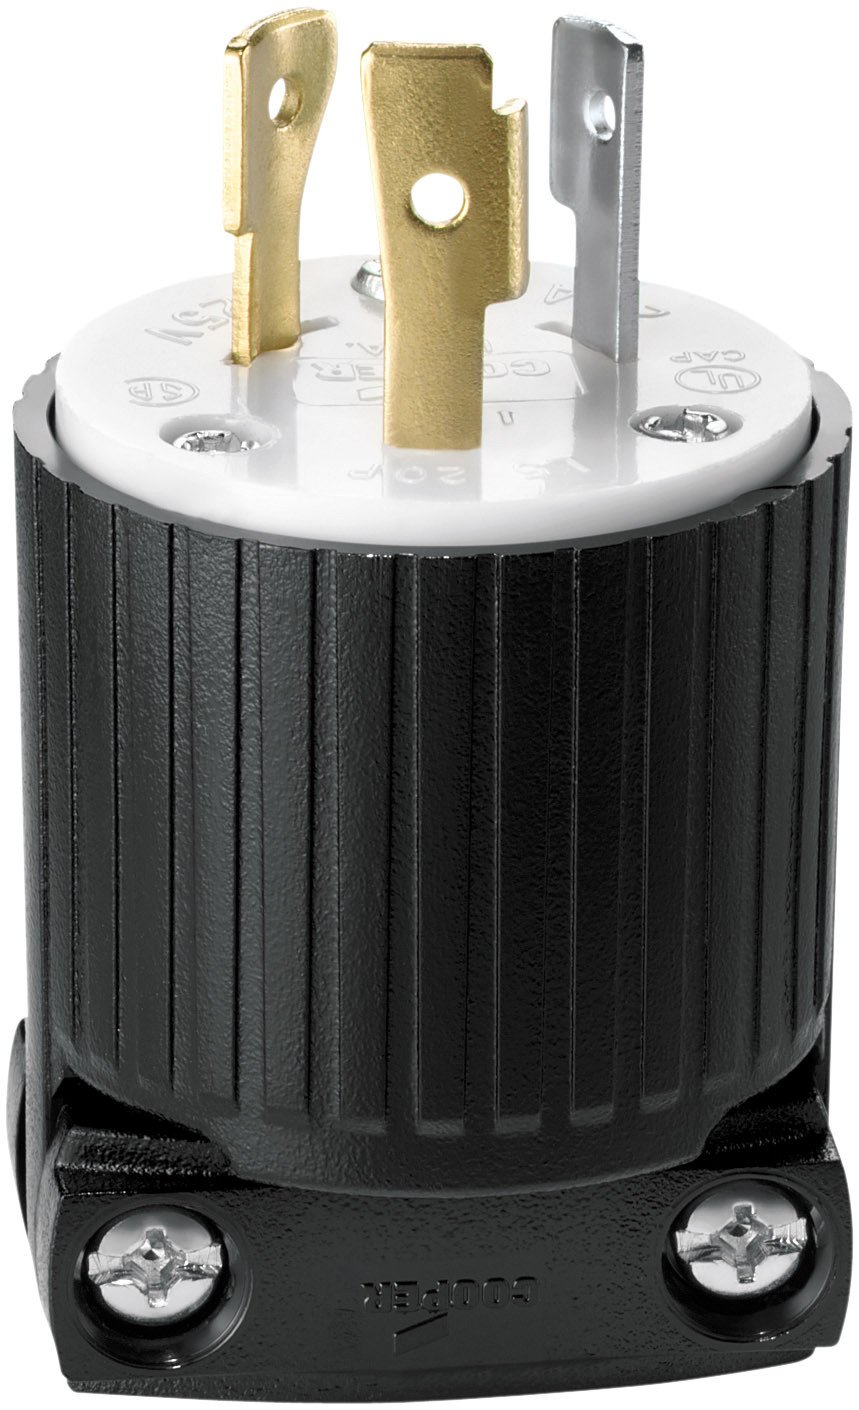 Eaton L520P 20-Amp 125-Volt Hart-Lock Industrial Grade Plug with Safety Grip Black and White